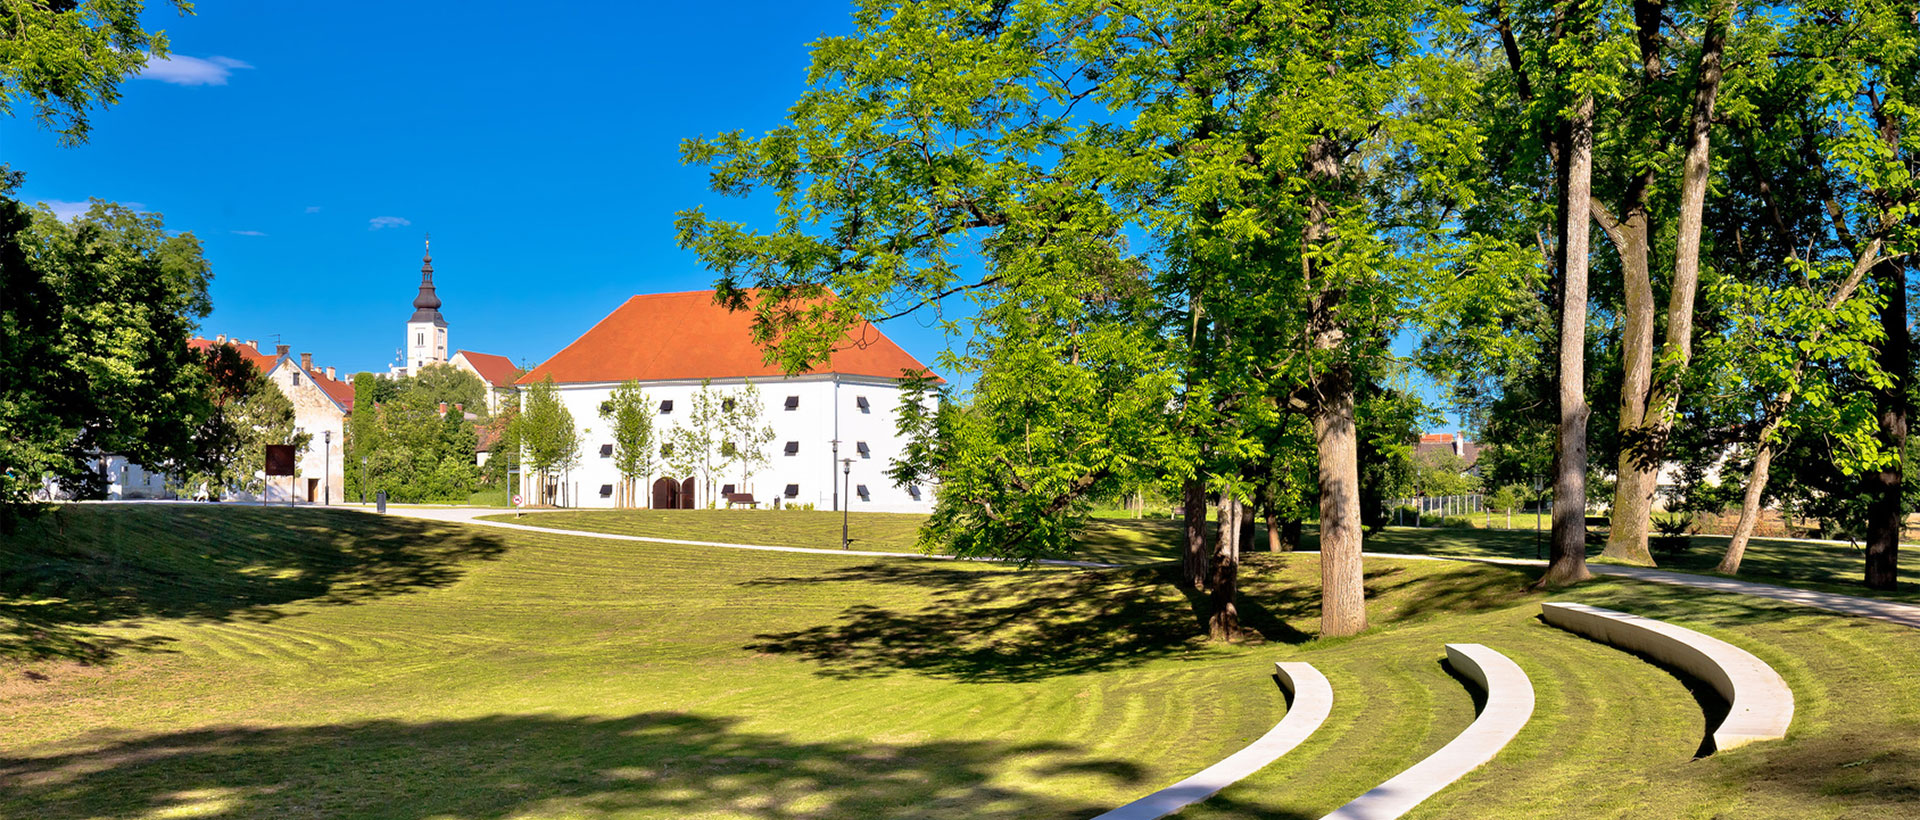 Lush hotel in Zagreb County ups Croatian tourism stock